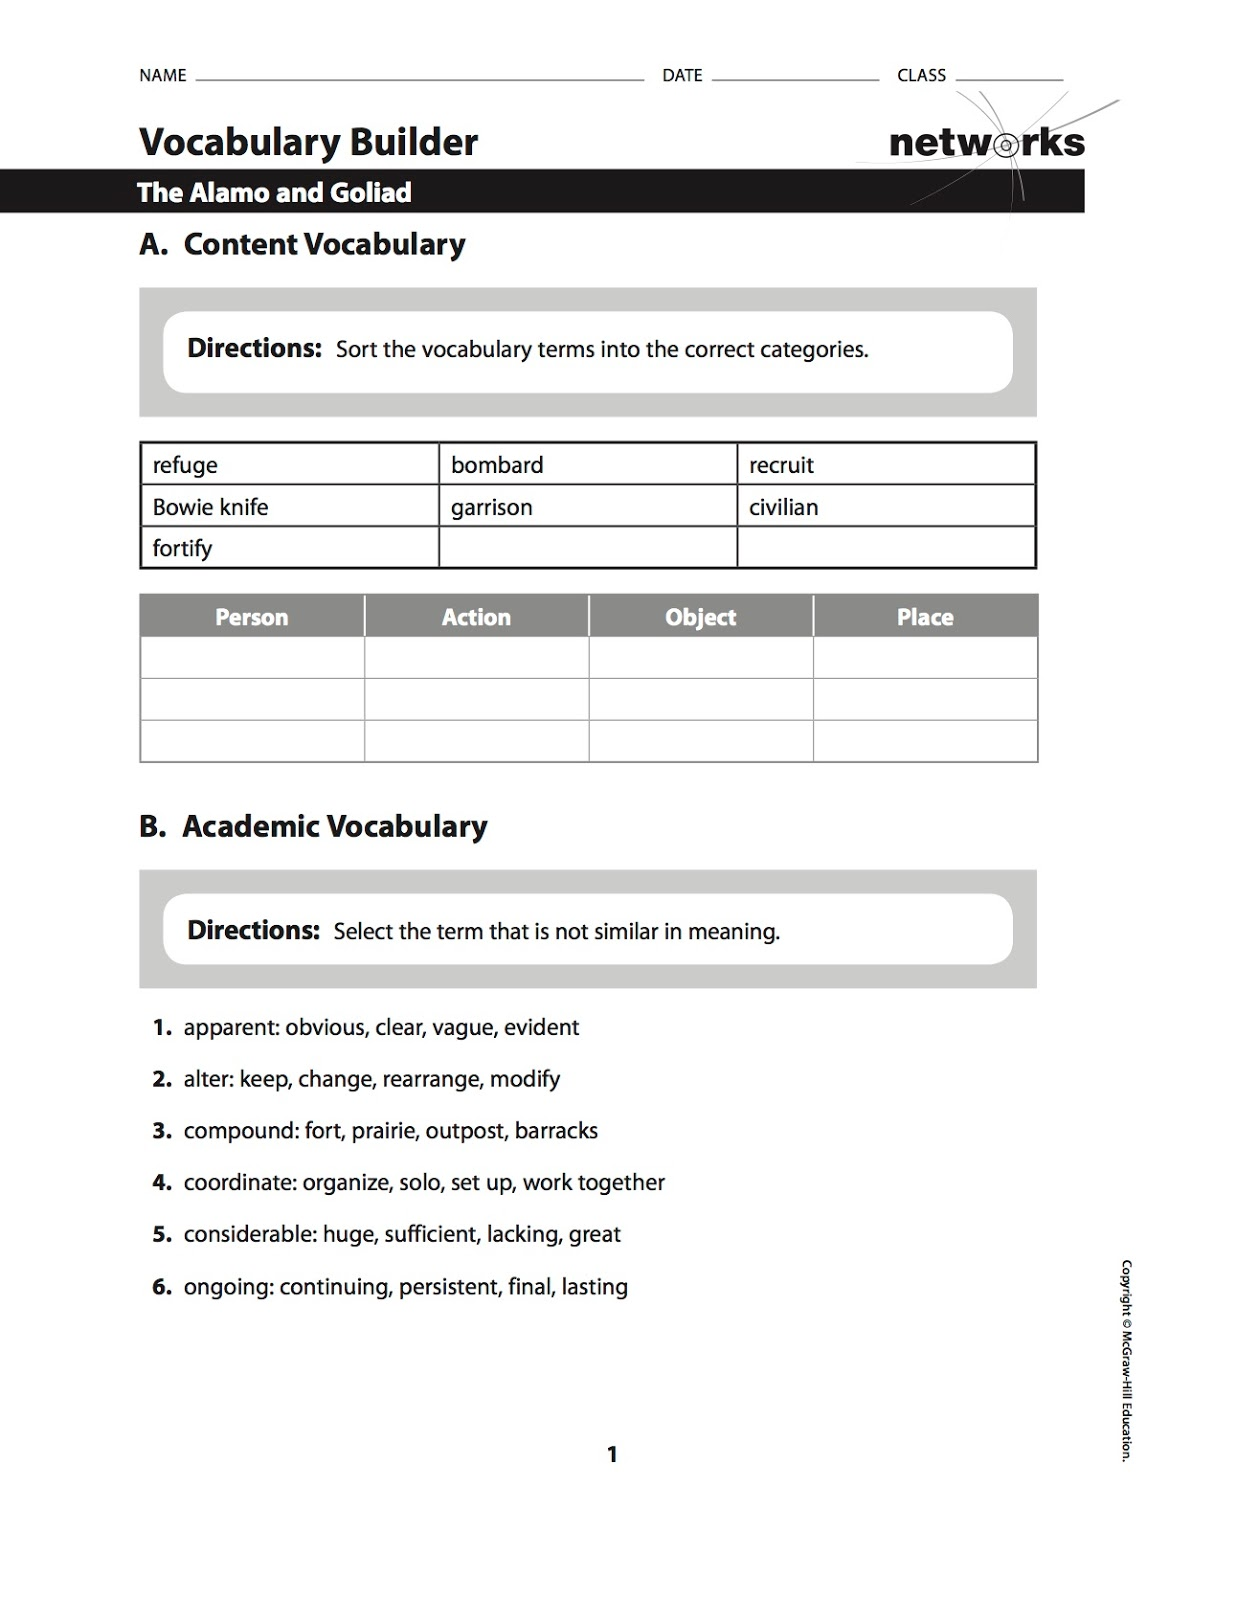 ohio department of education lesson plan template - worksheet guided reading worksheets grass fedjp